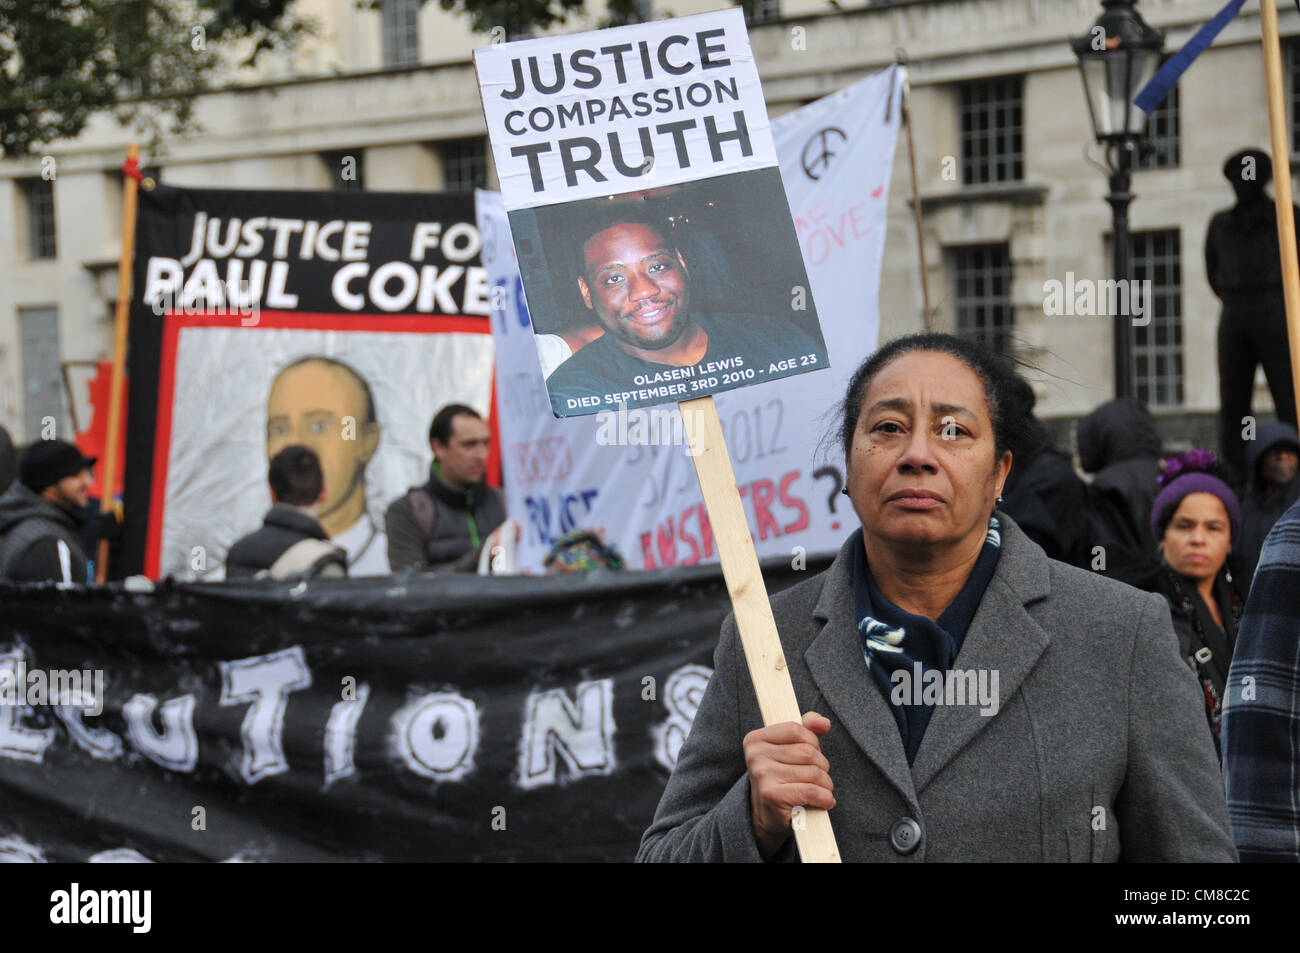 Whitehall, London, UK. 27th October 2012. A woman holds a banner during the UFFC protest. A protest by the UFFC - Stock Image